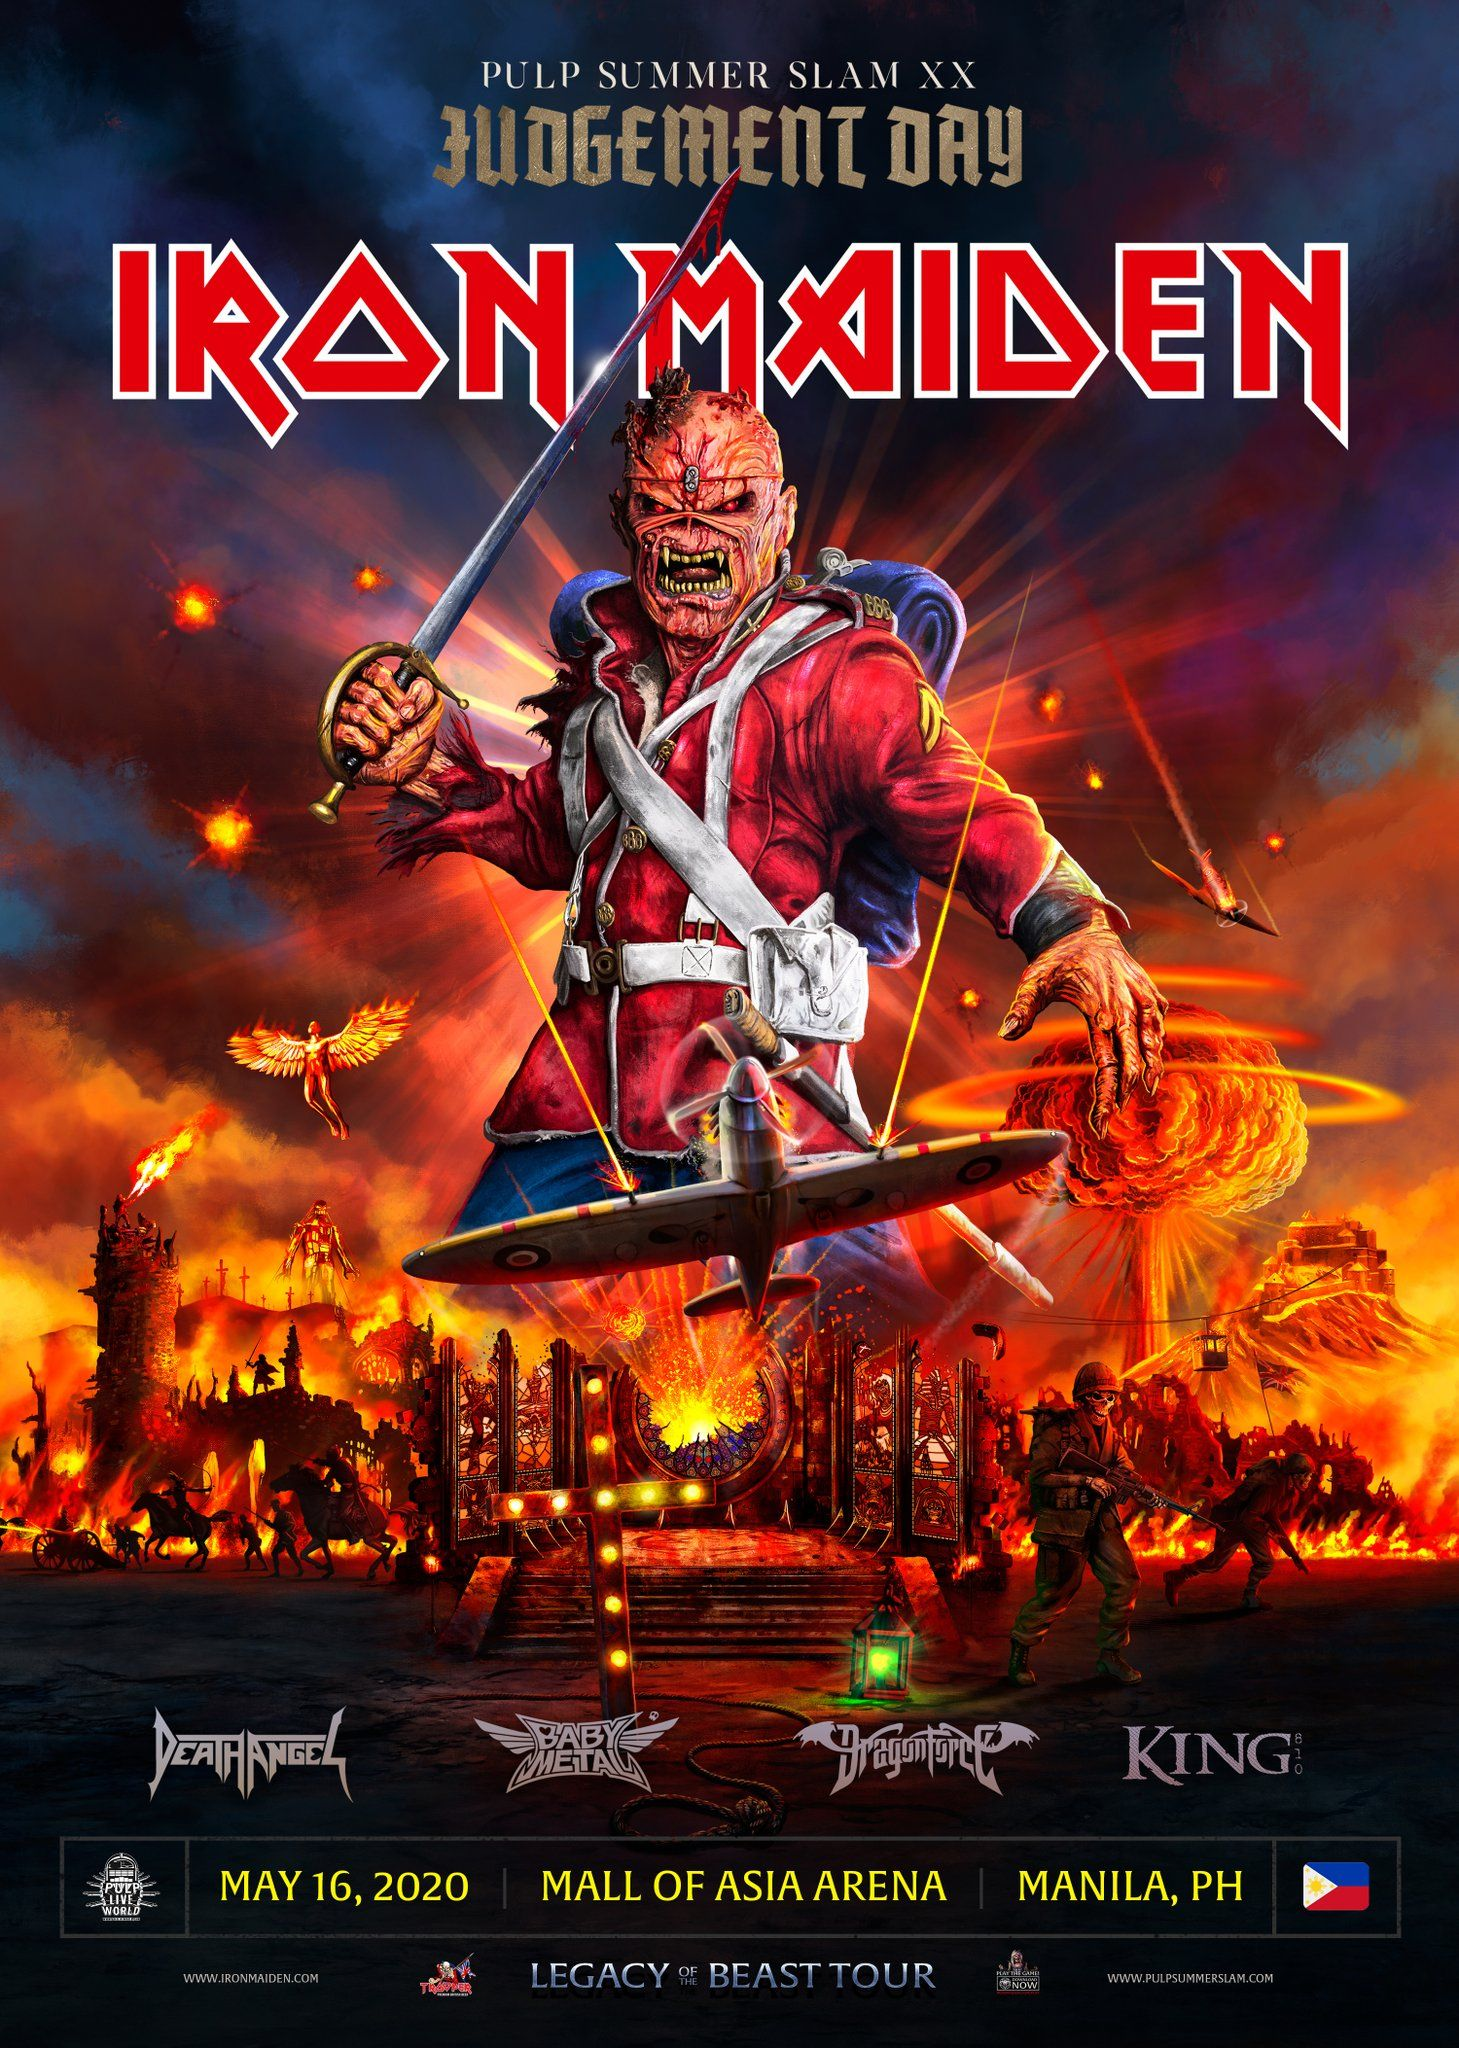 Pulp Live World On Twitter Iron Maiden Iron Maiden Posters Maiden